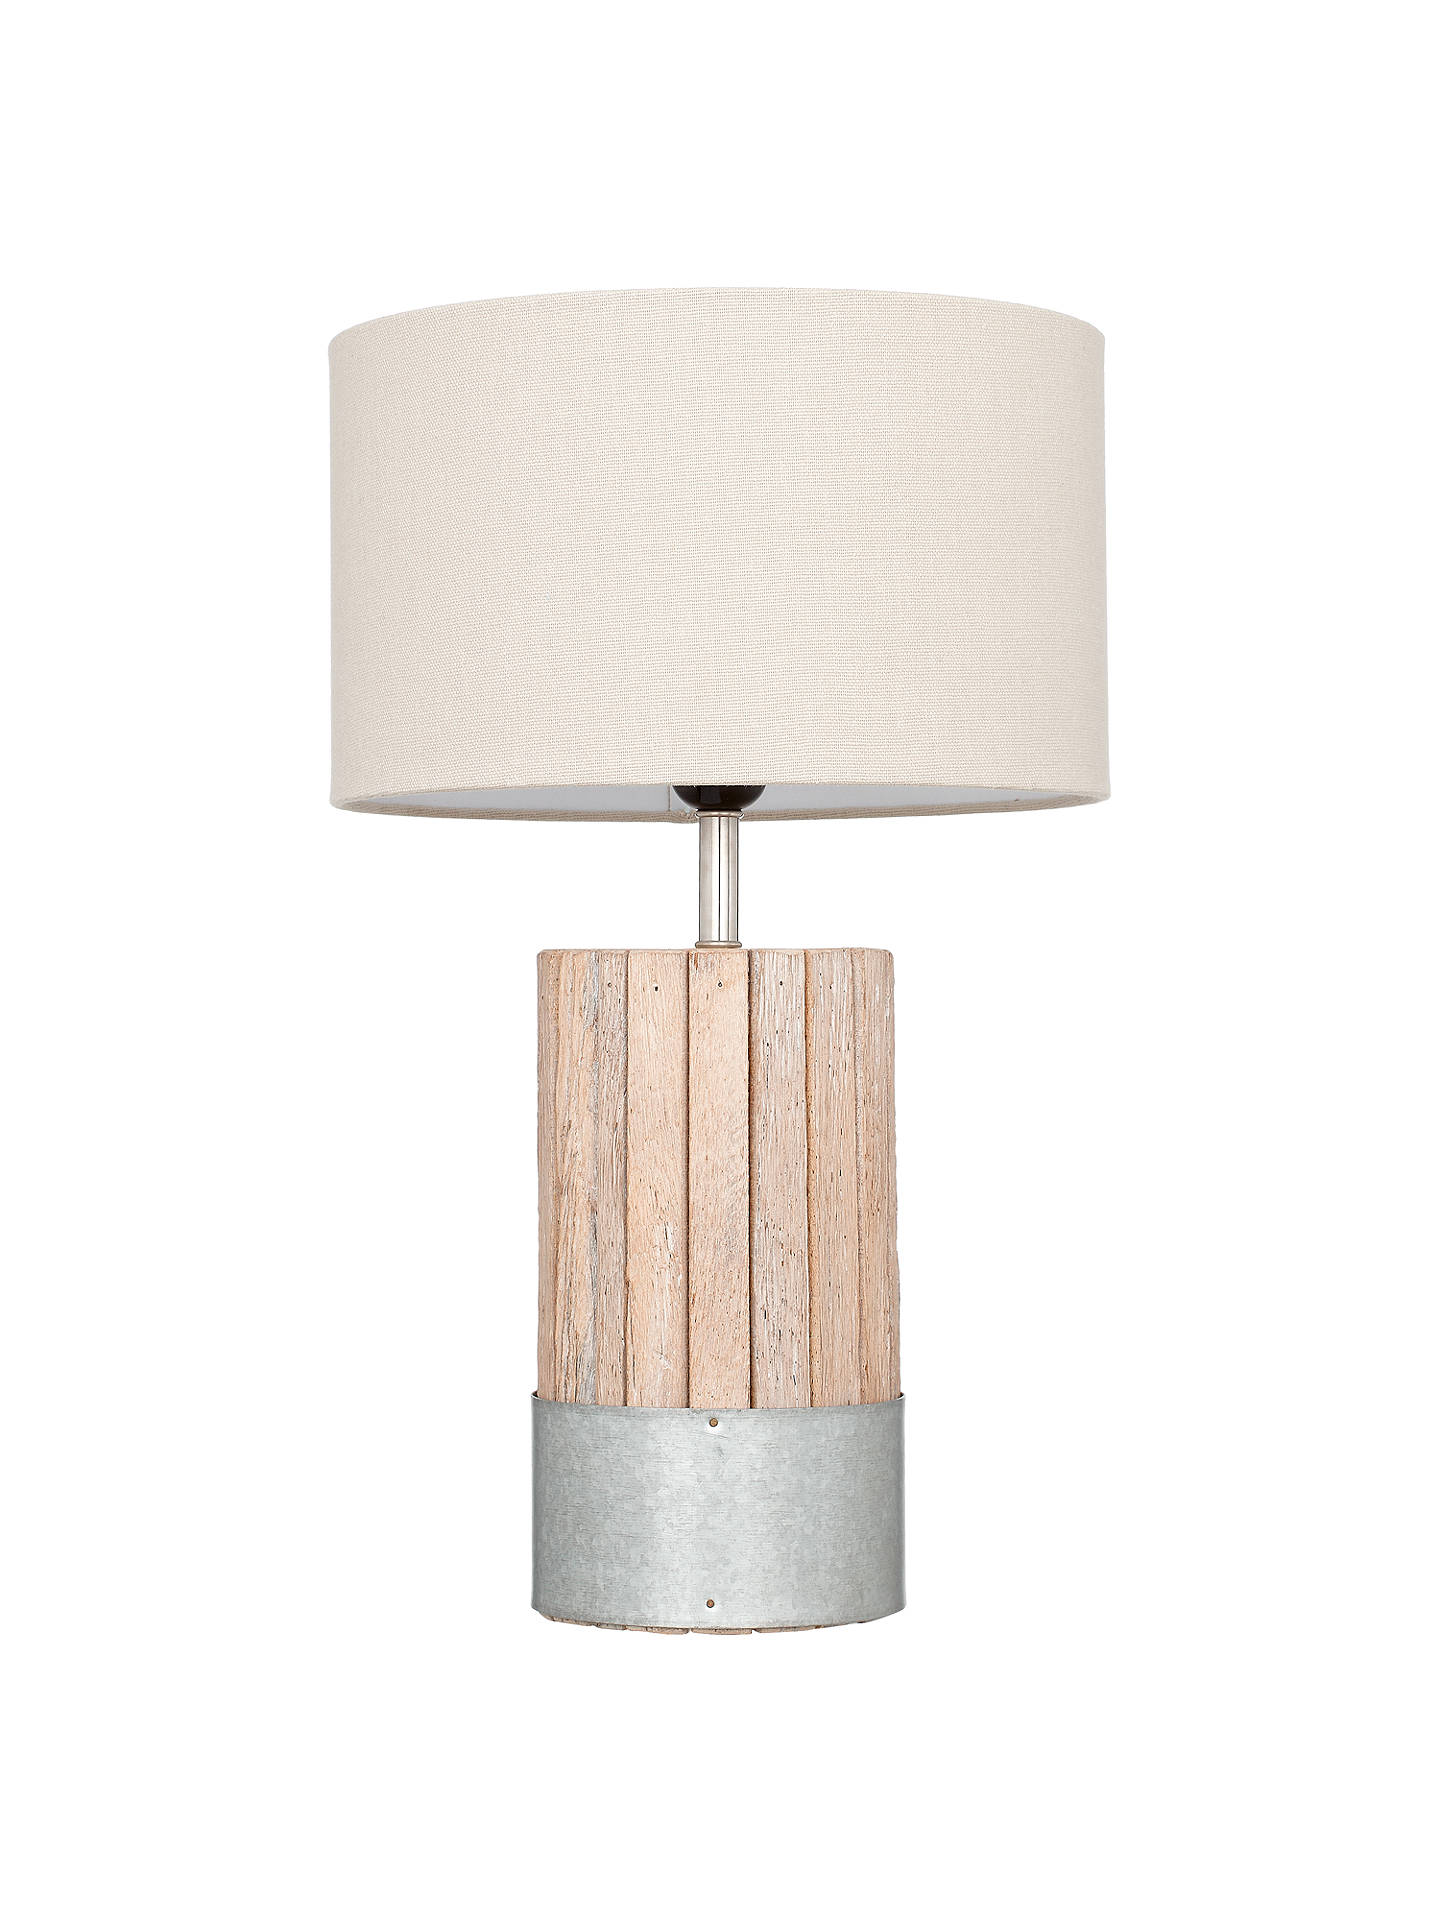 BuyJohn Lewis & Partners Brenna Table Lamp Online at johnlewis.com